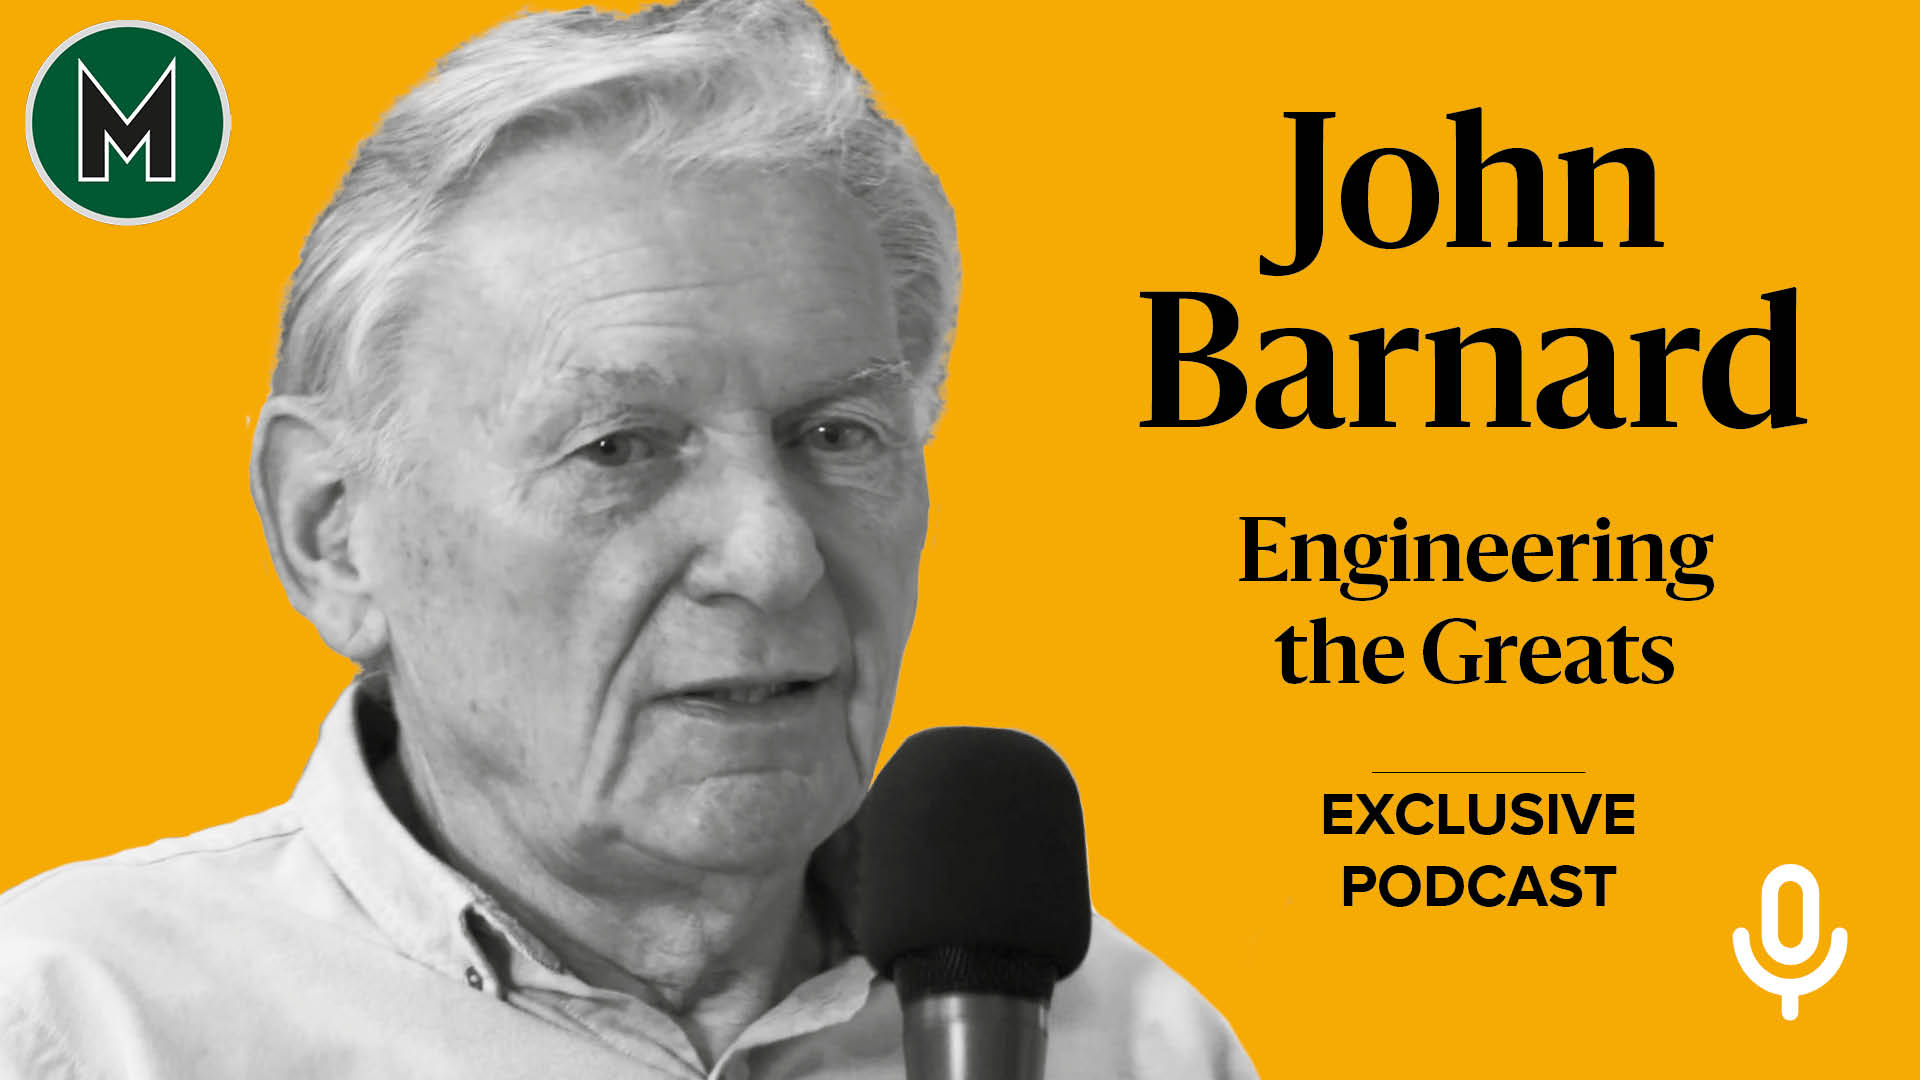 Podcast: John Barnard, Engineering the Greats